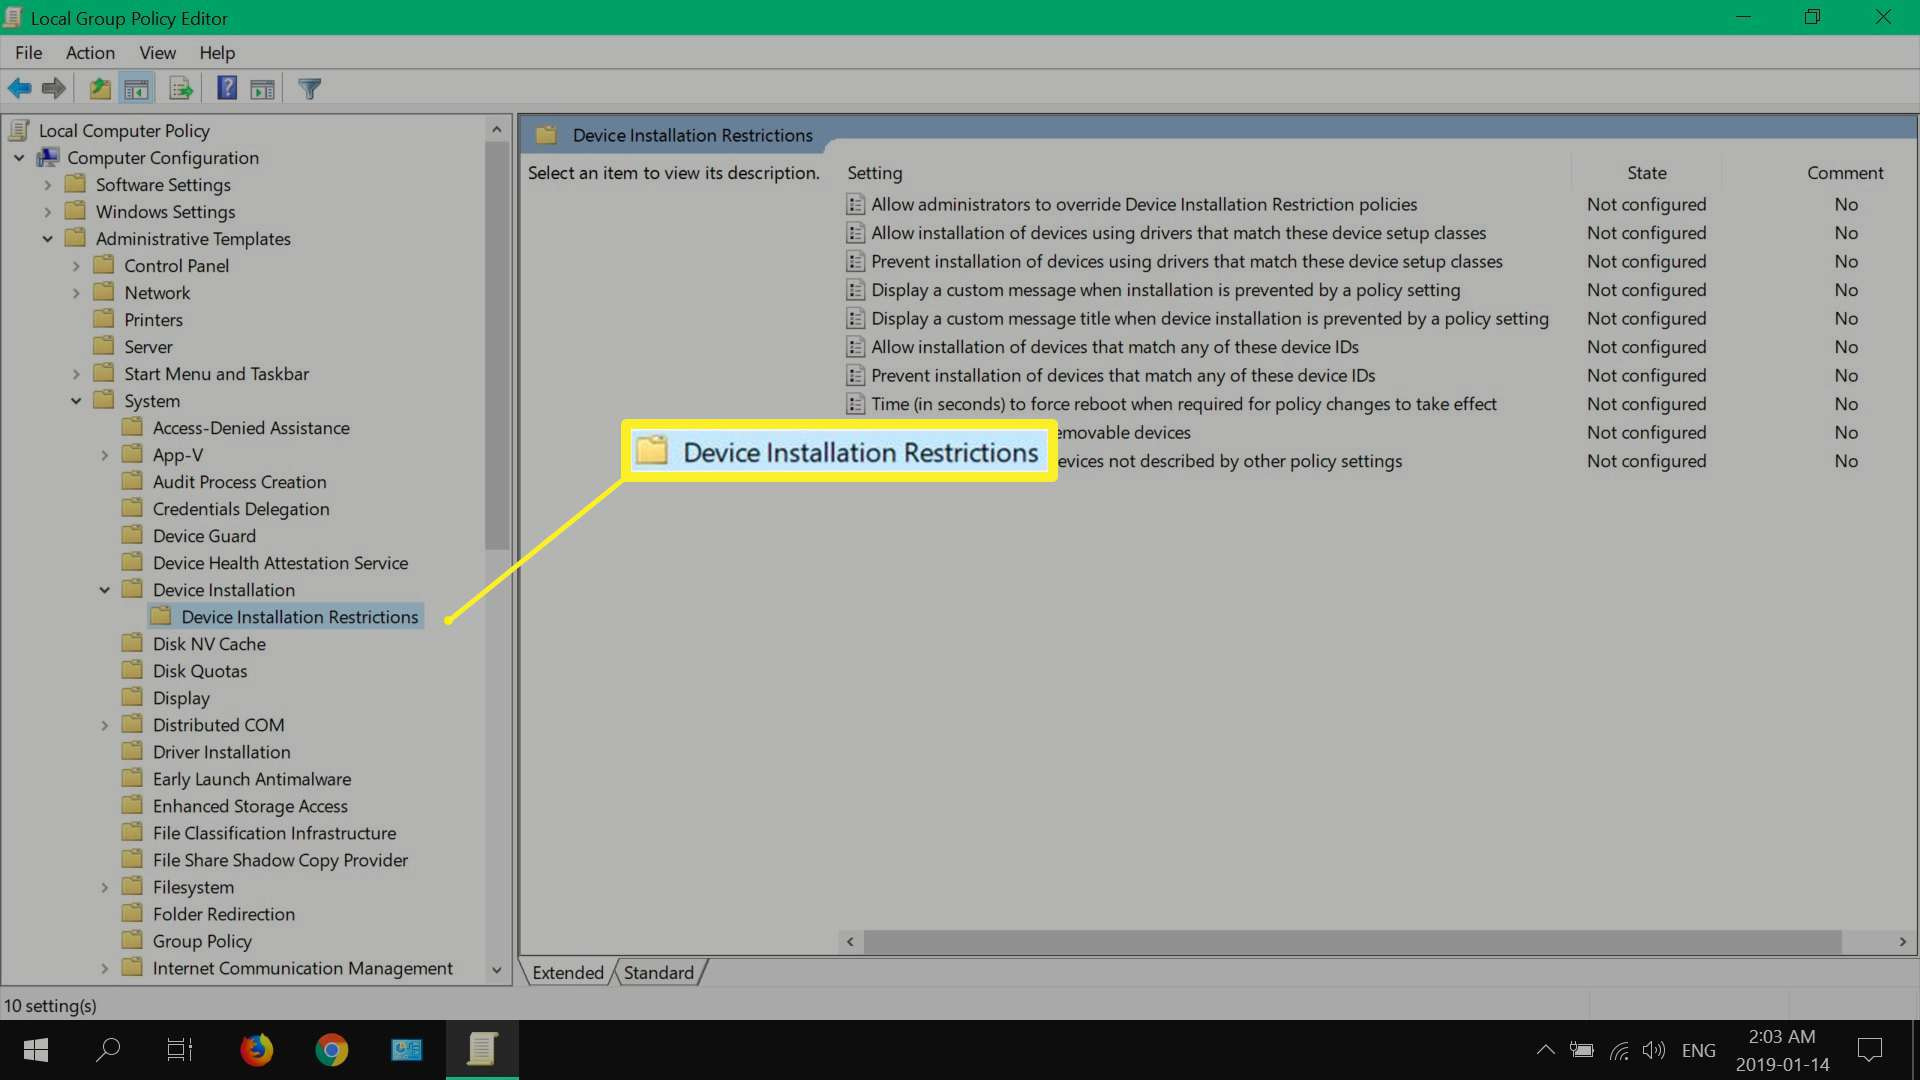 local group policy editor in Windows 10 Pro